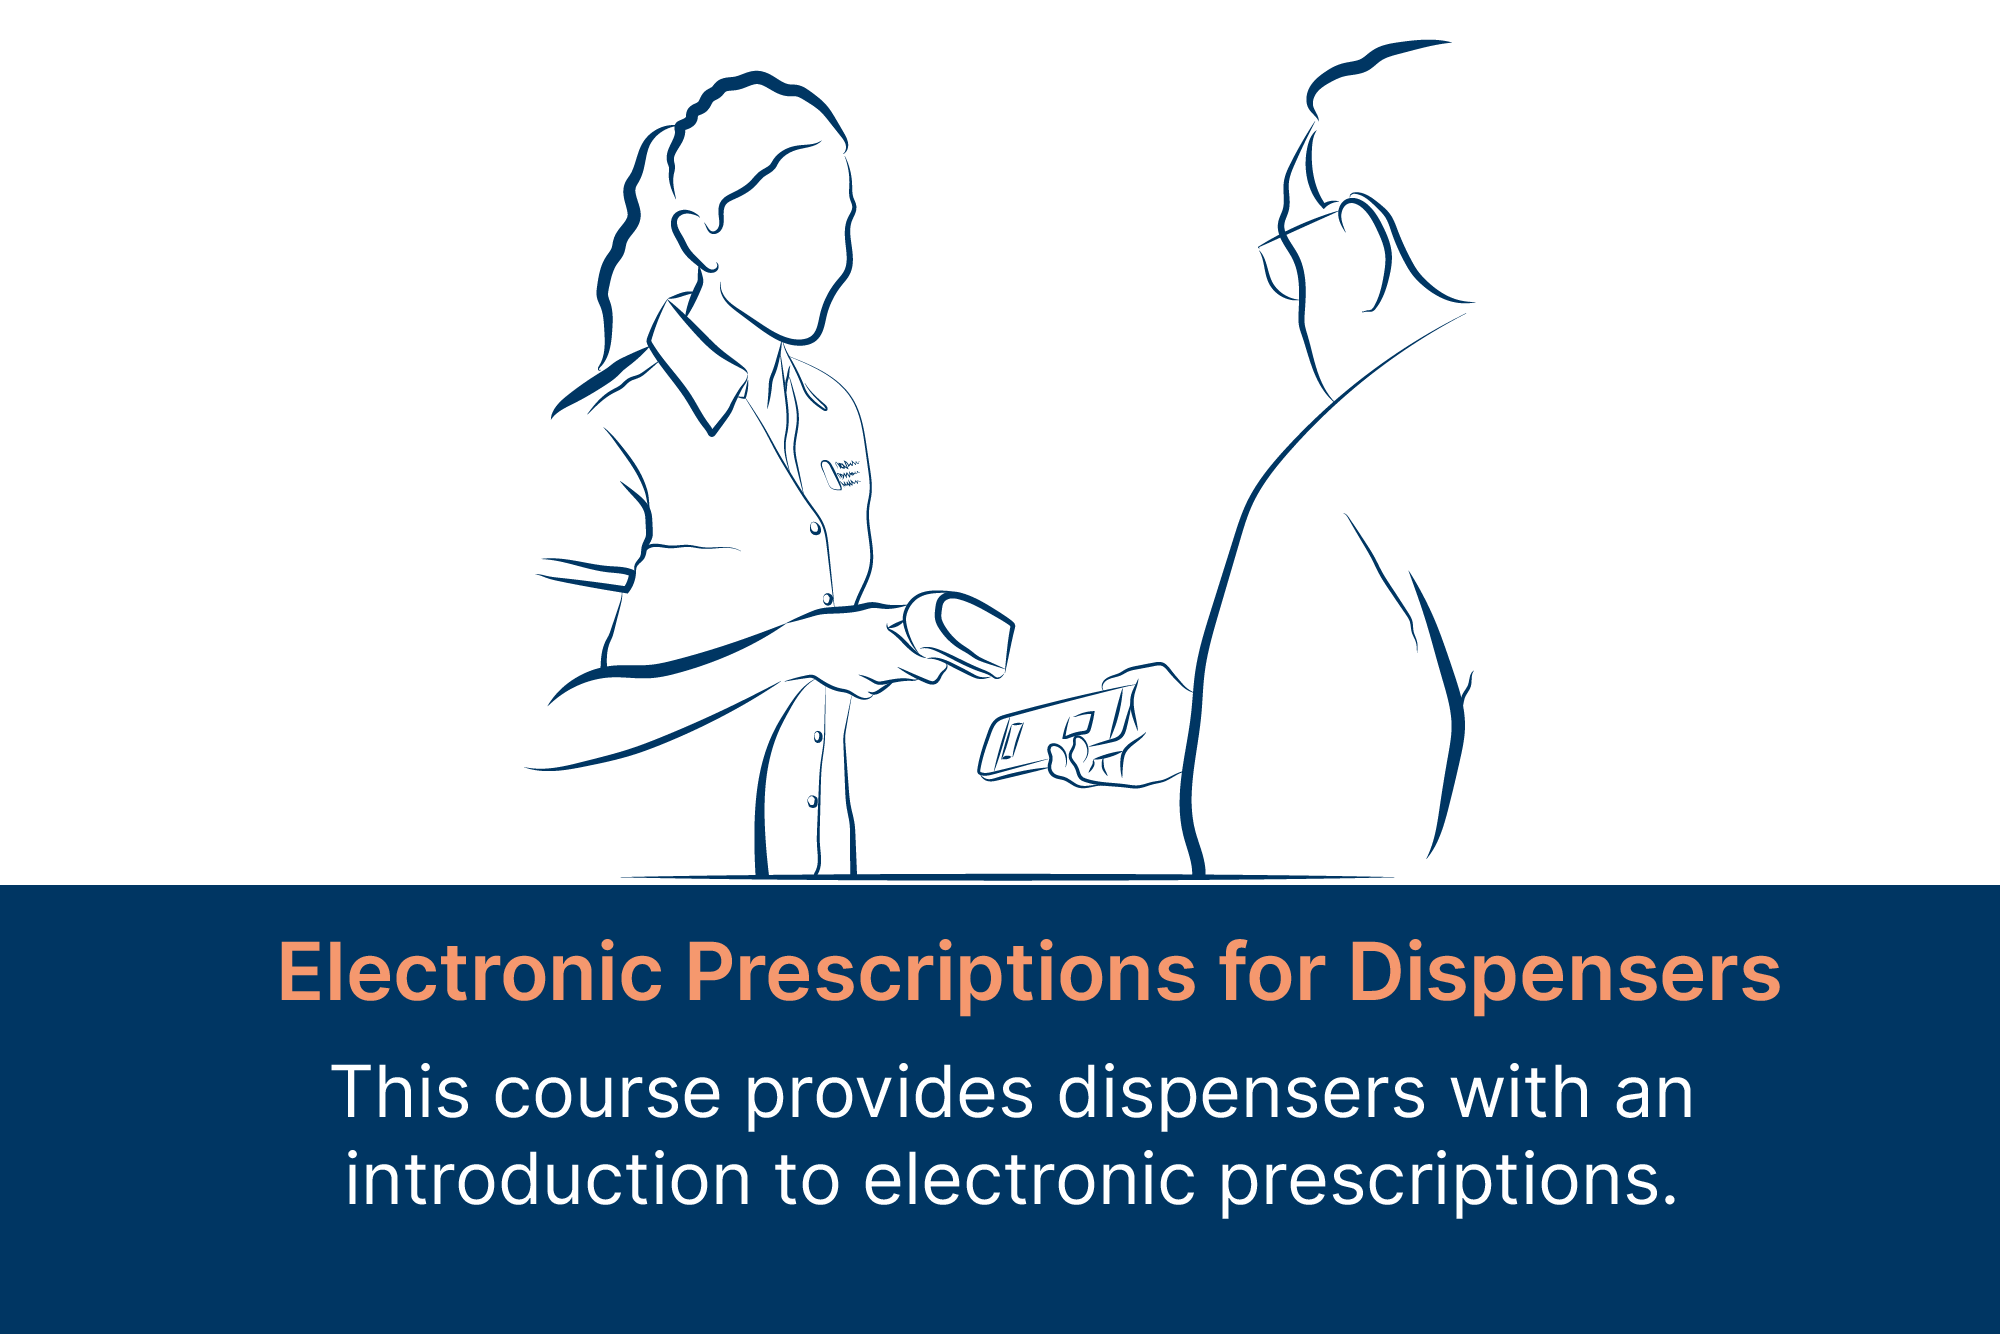 Electronic Prescriptions for Dispensers